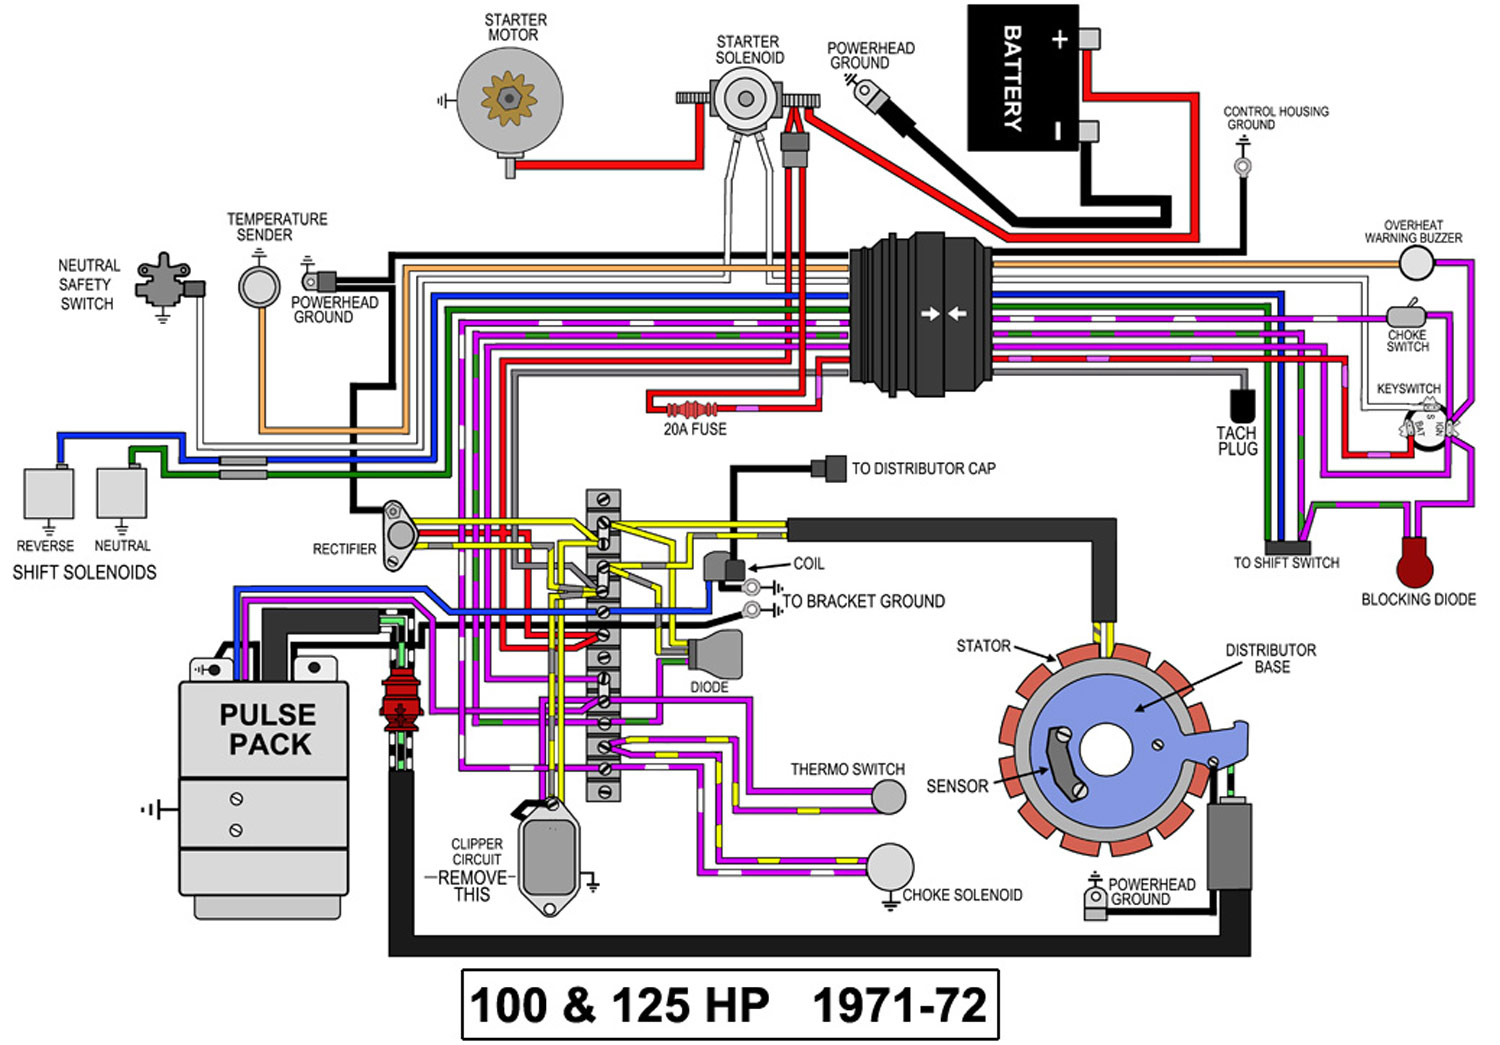 hight resolution of 1975 johnson 70 wire diagram